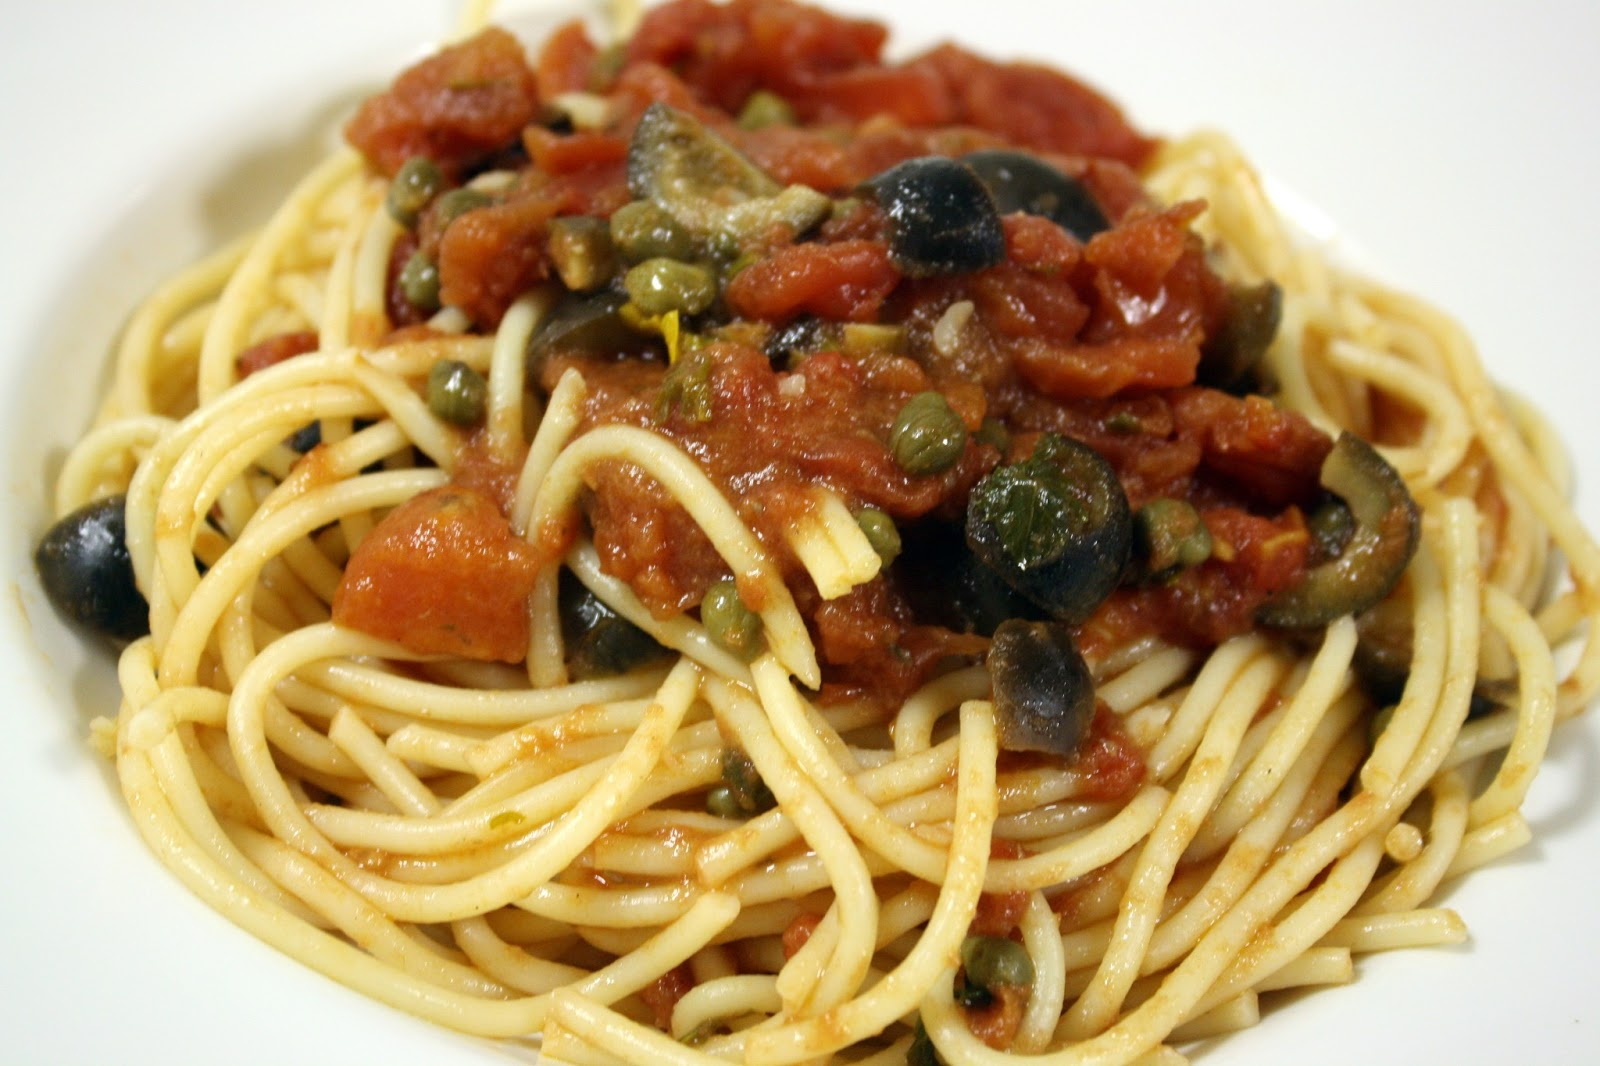 ... roasted vegetarian puttanesca sauce linguine with oven roasted tomato